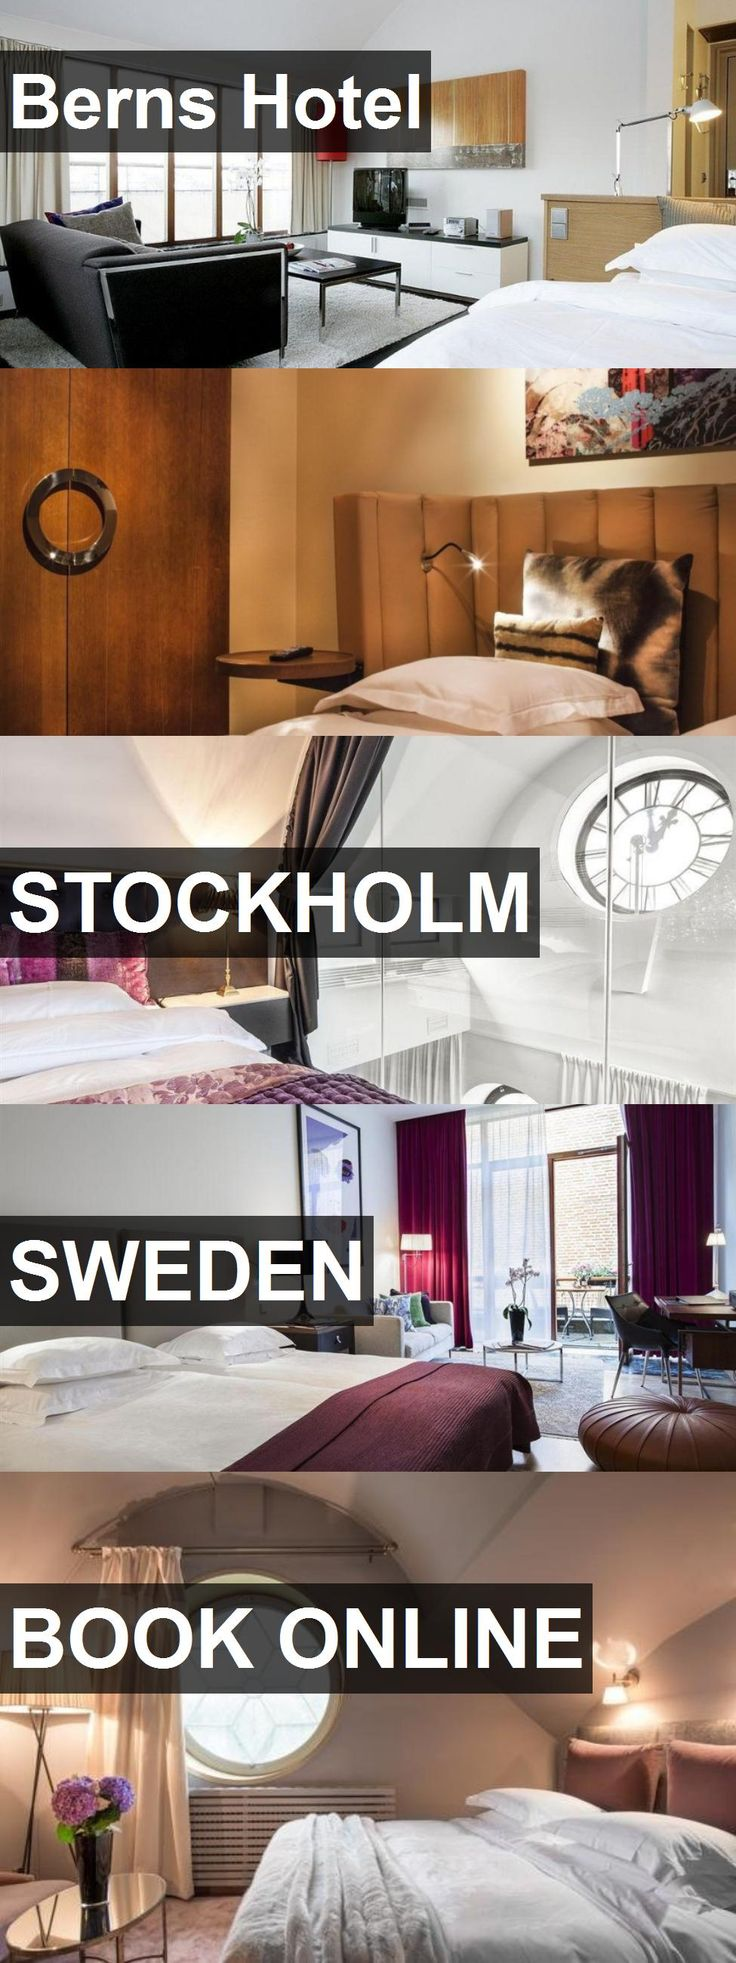 Hotel Berns Hotel in Stockholm, Sweden. For more information, photos, reviews and best prices please follow the link. #Sweden #Stockholm #BernsHotel #hotel #travel #vacation